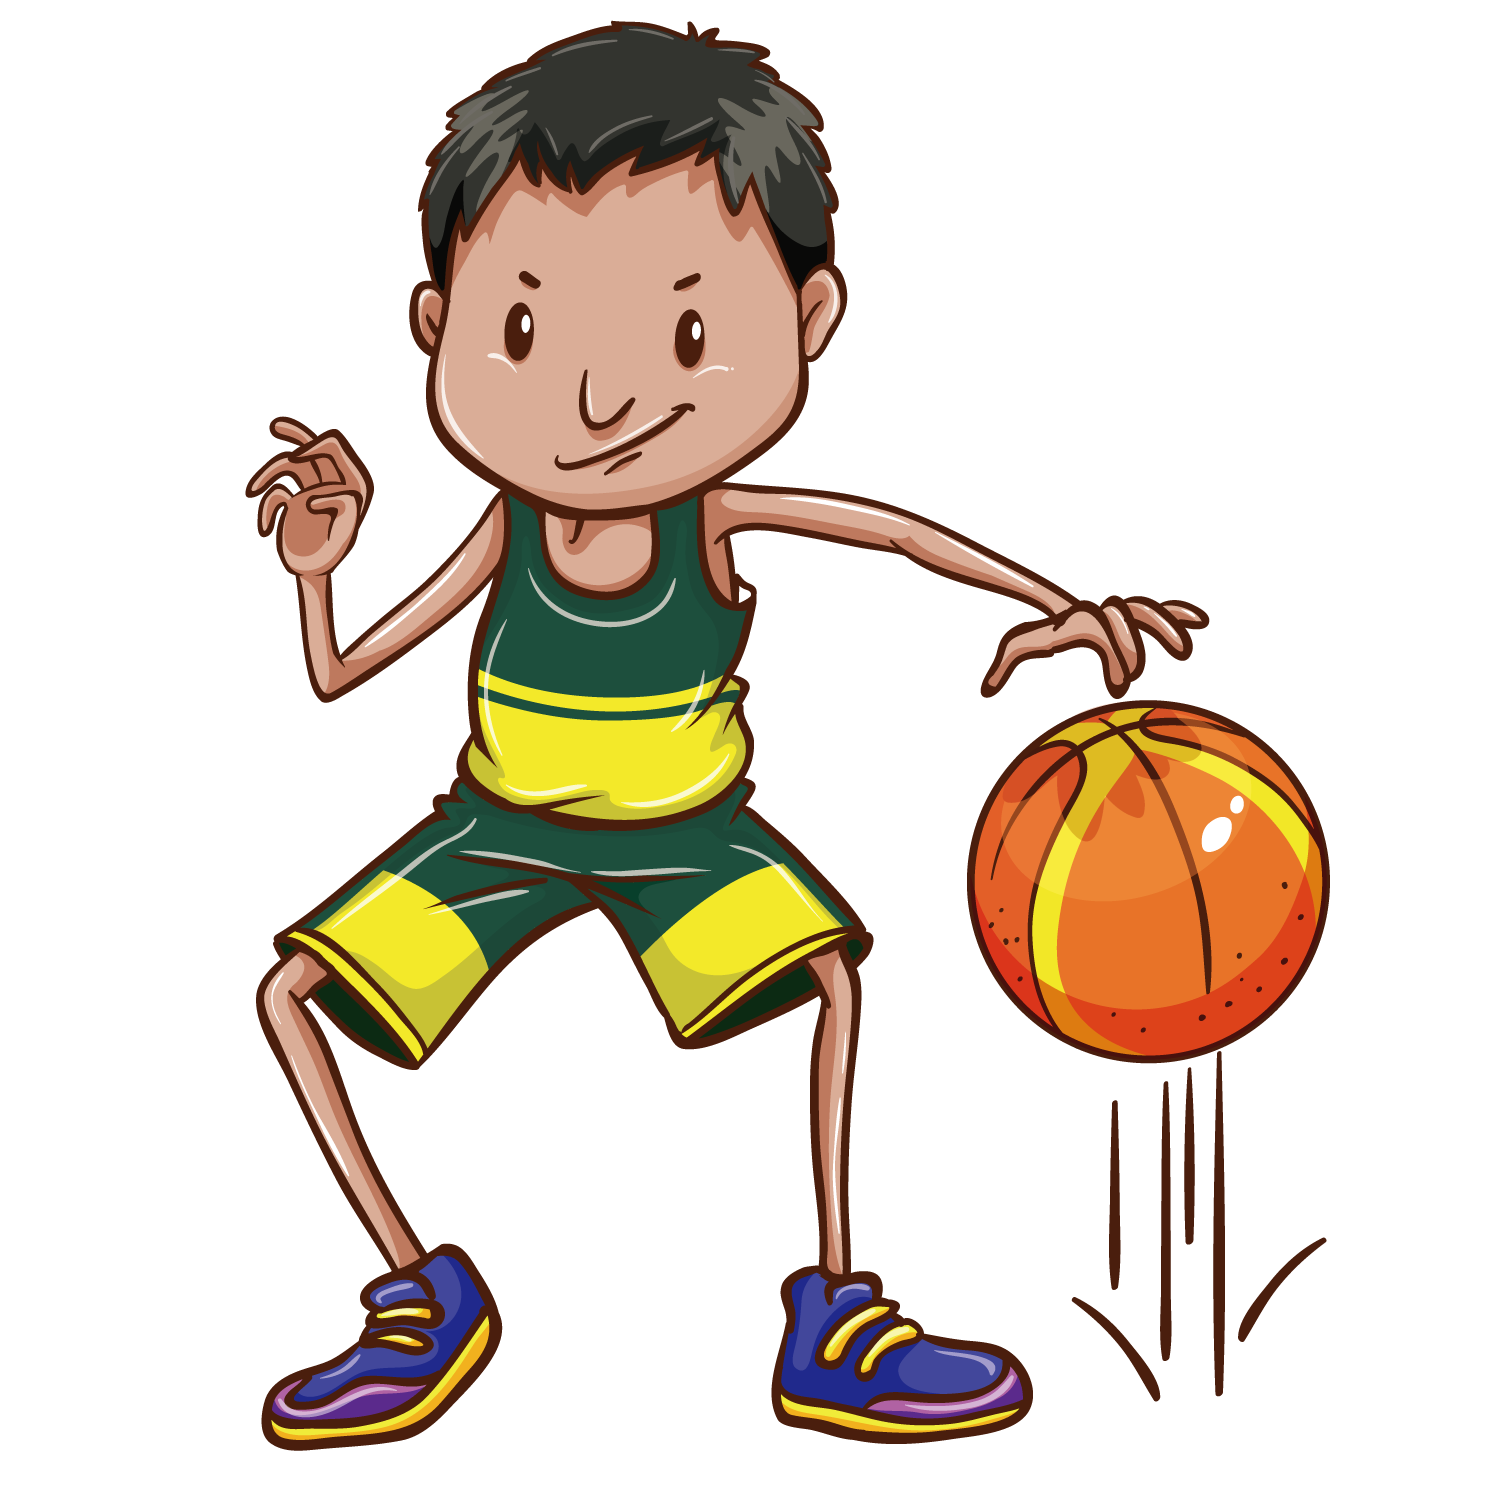 Girls and boys playing basketball clipart vector library Basketball Drawing Clip art - Basketball boy 1500*1500 transprent ... vector library